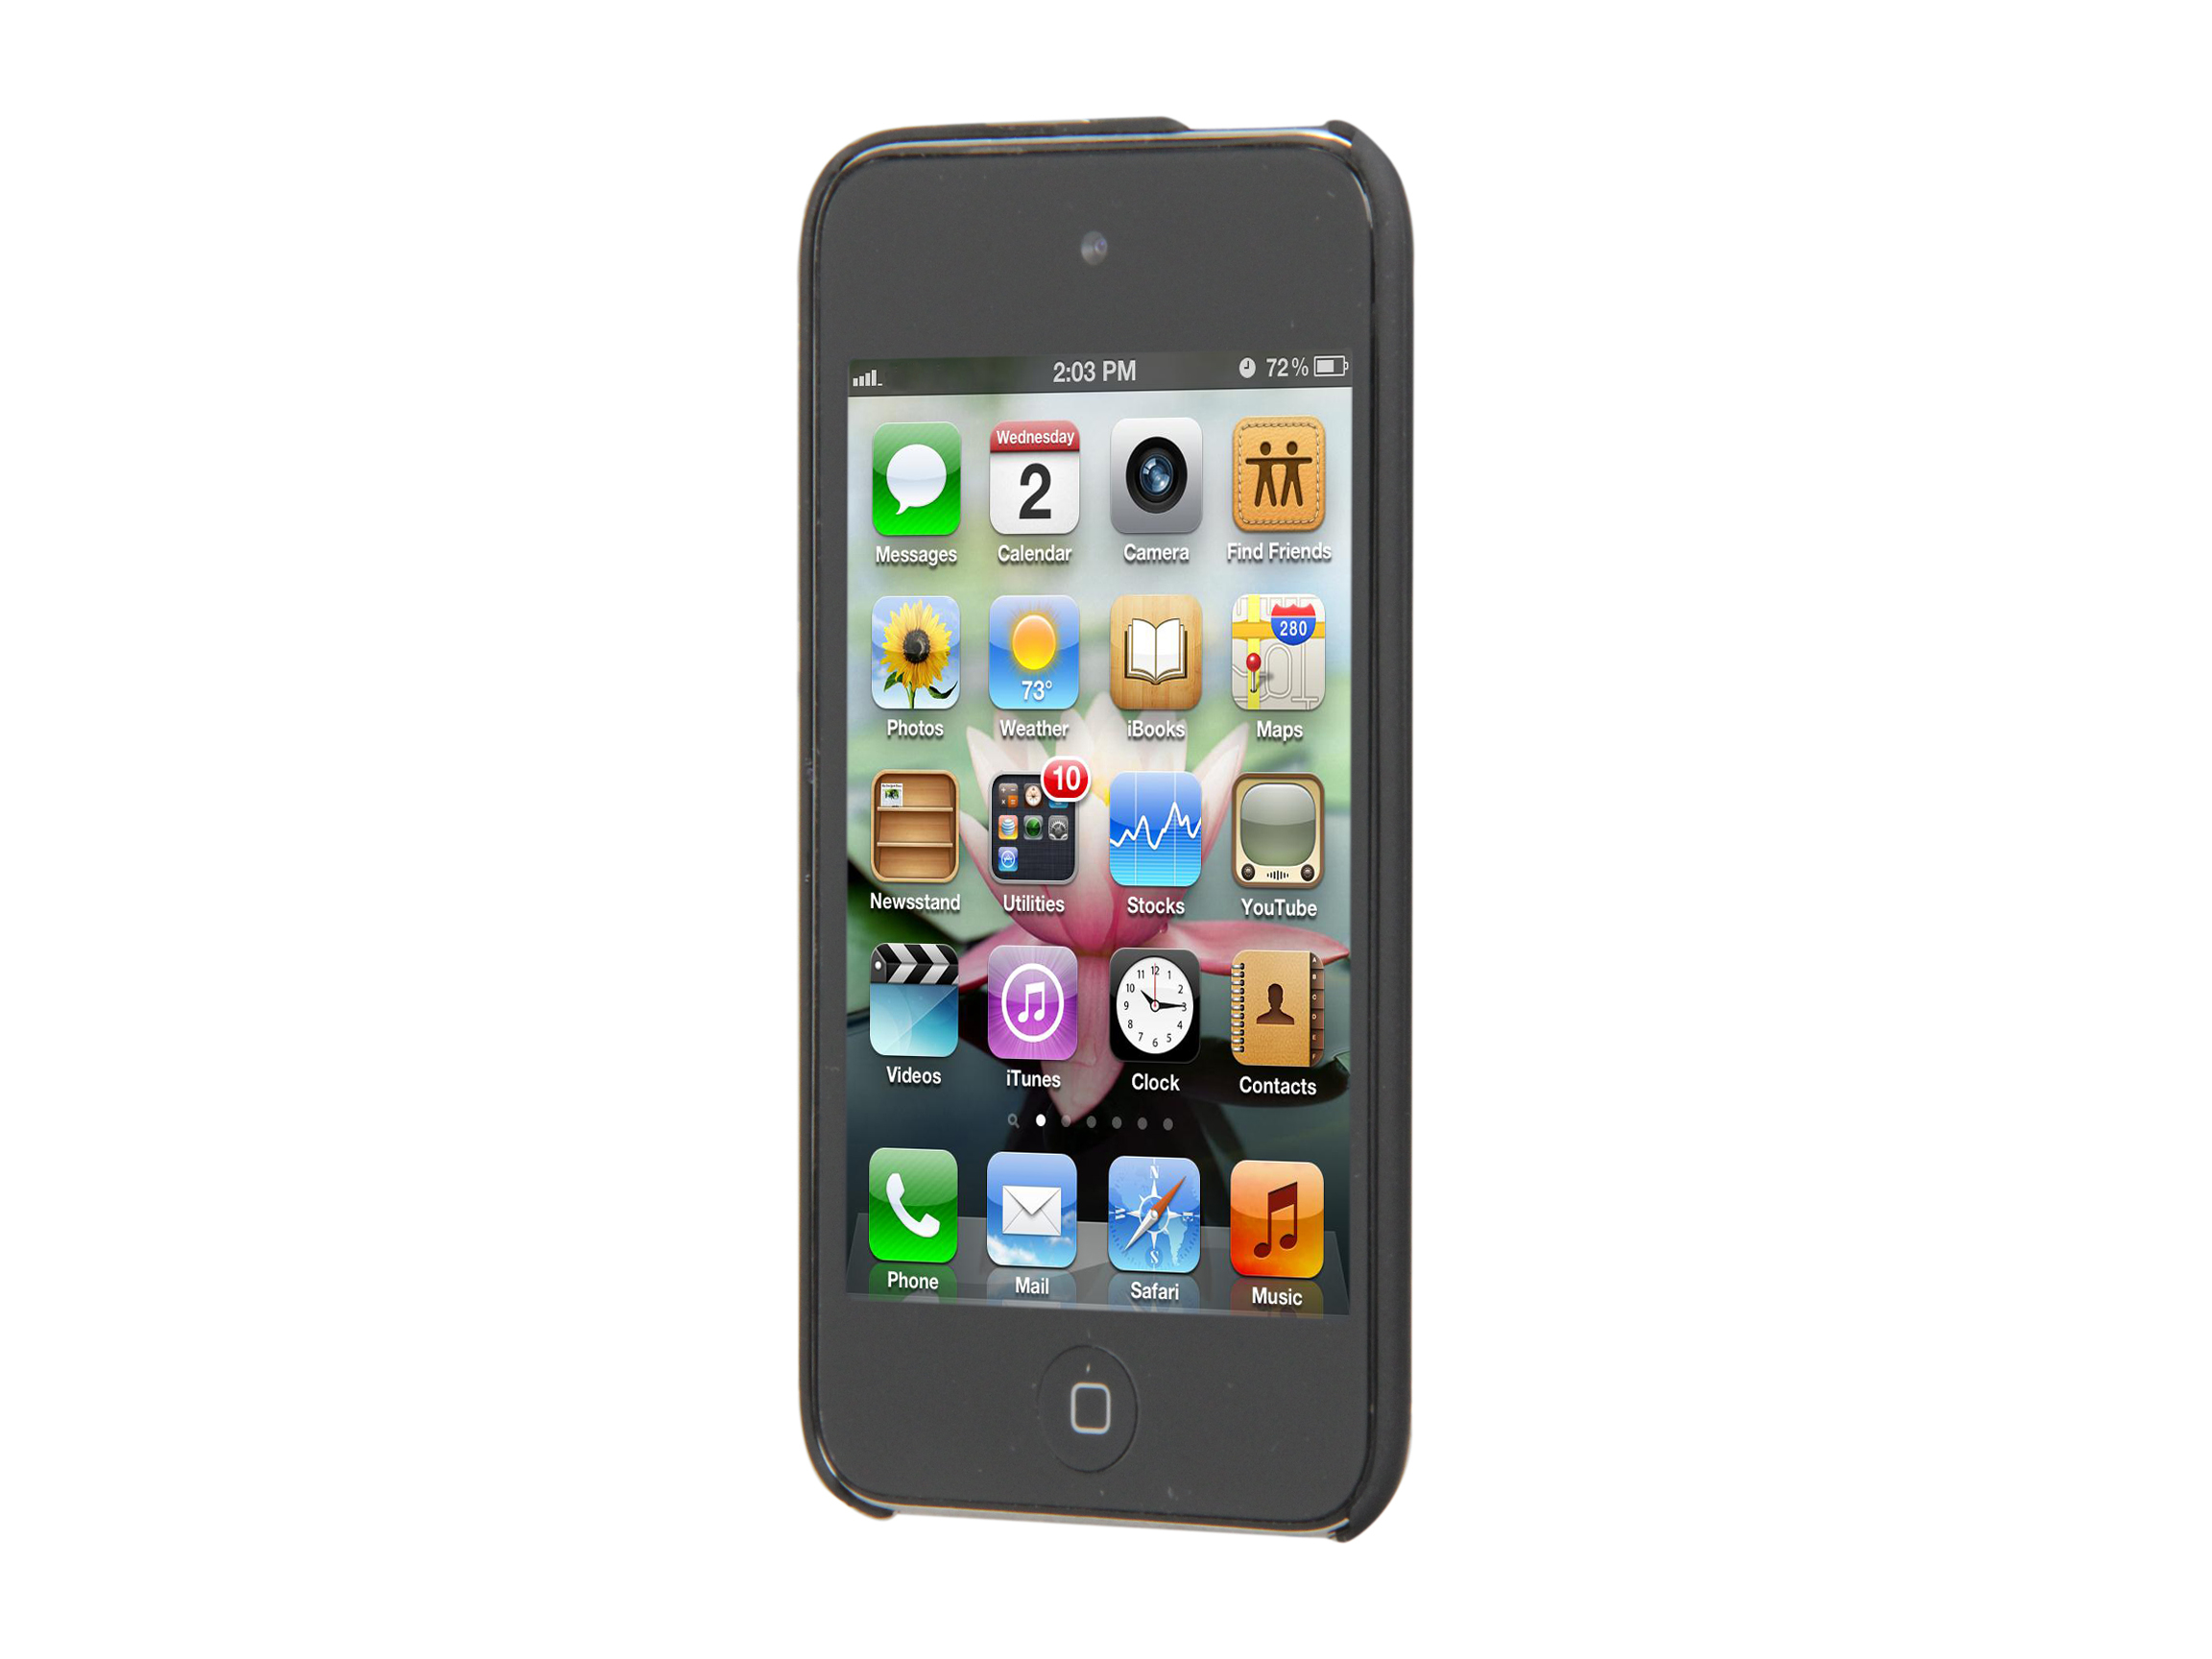 Apple's popular 8GB iPod touch now reaches its 4th generation, offering an incredible iPod, video camera, pocket computer, and portable game player all in a single sleek unit with exceptional battery life.